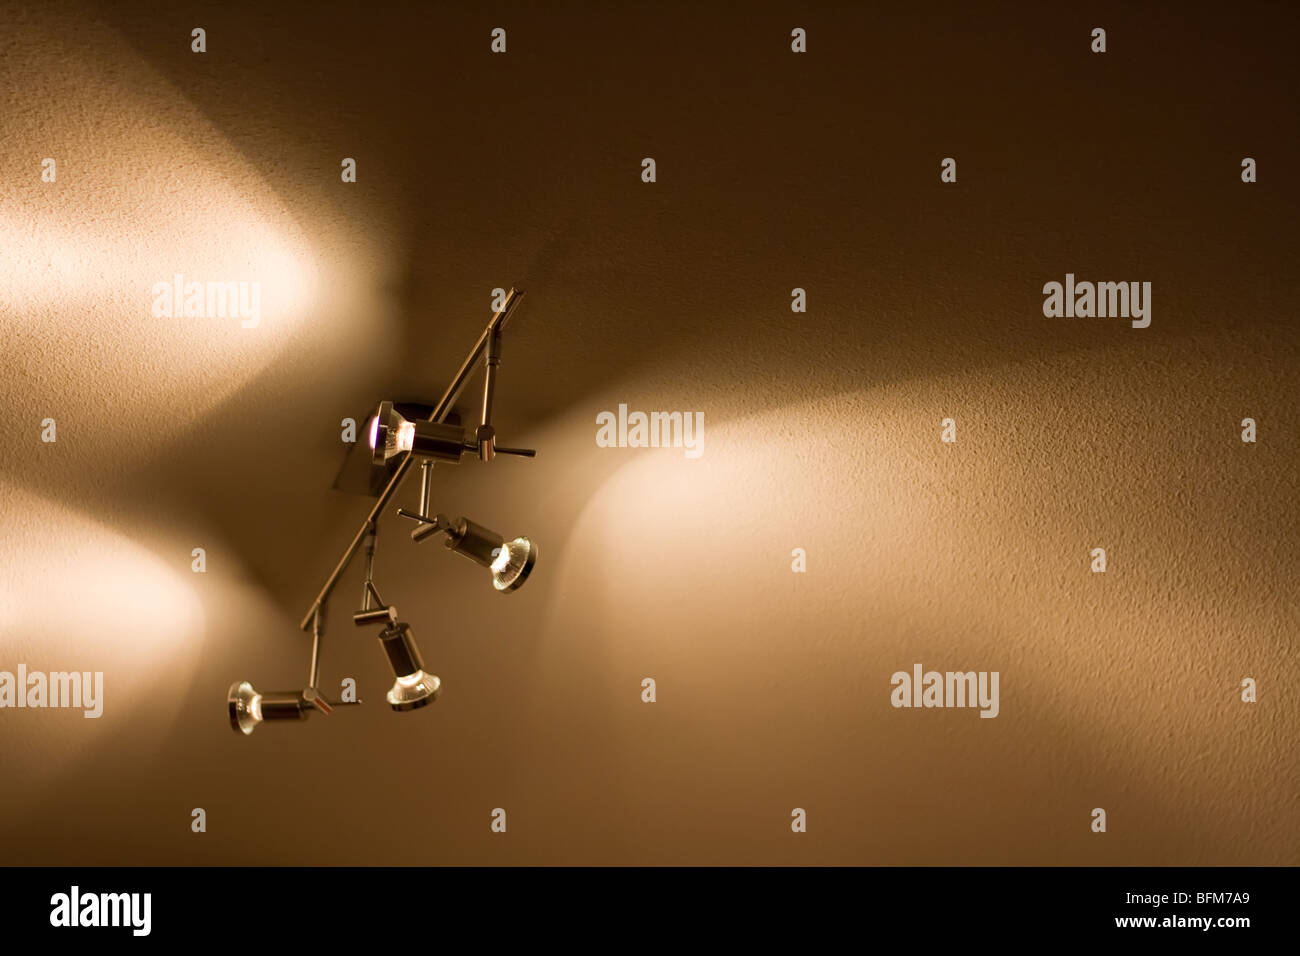 Spot lights shining on the ceiling - Stock Image